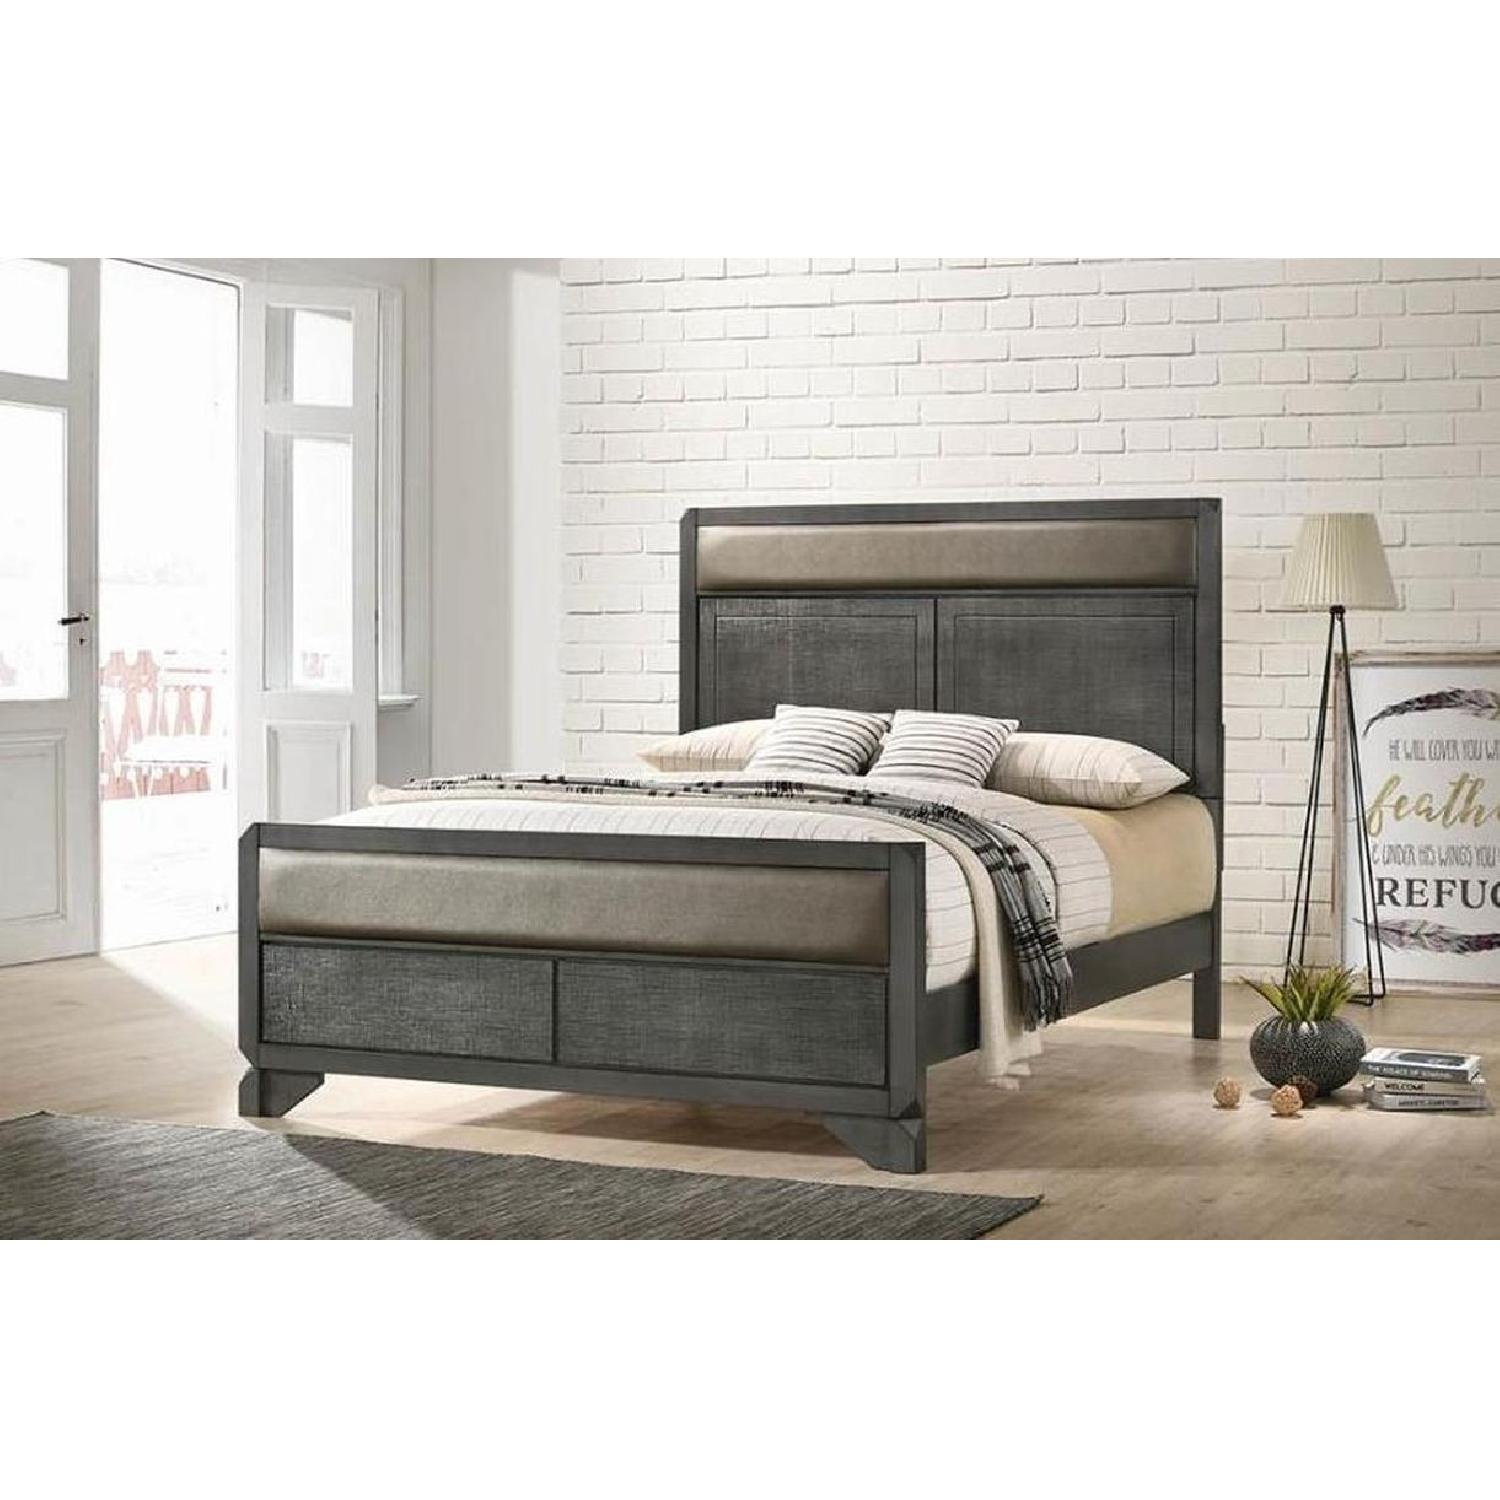 Leatherette Queen Bed in Caviar Finish w/ Woven Texture - image-1